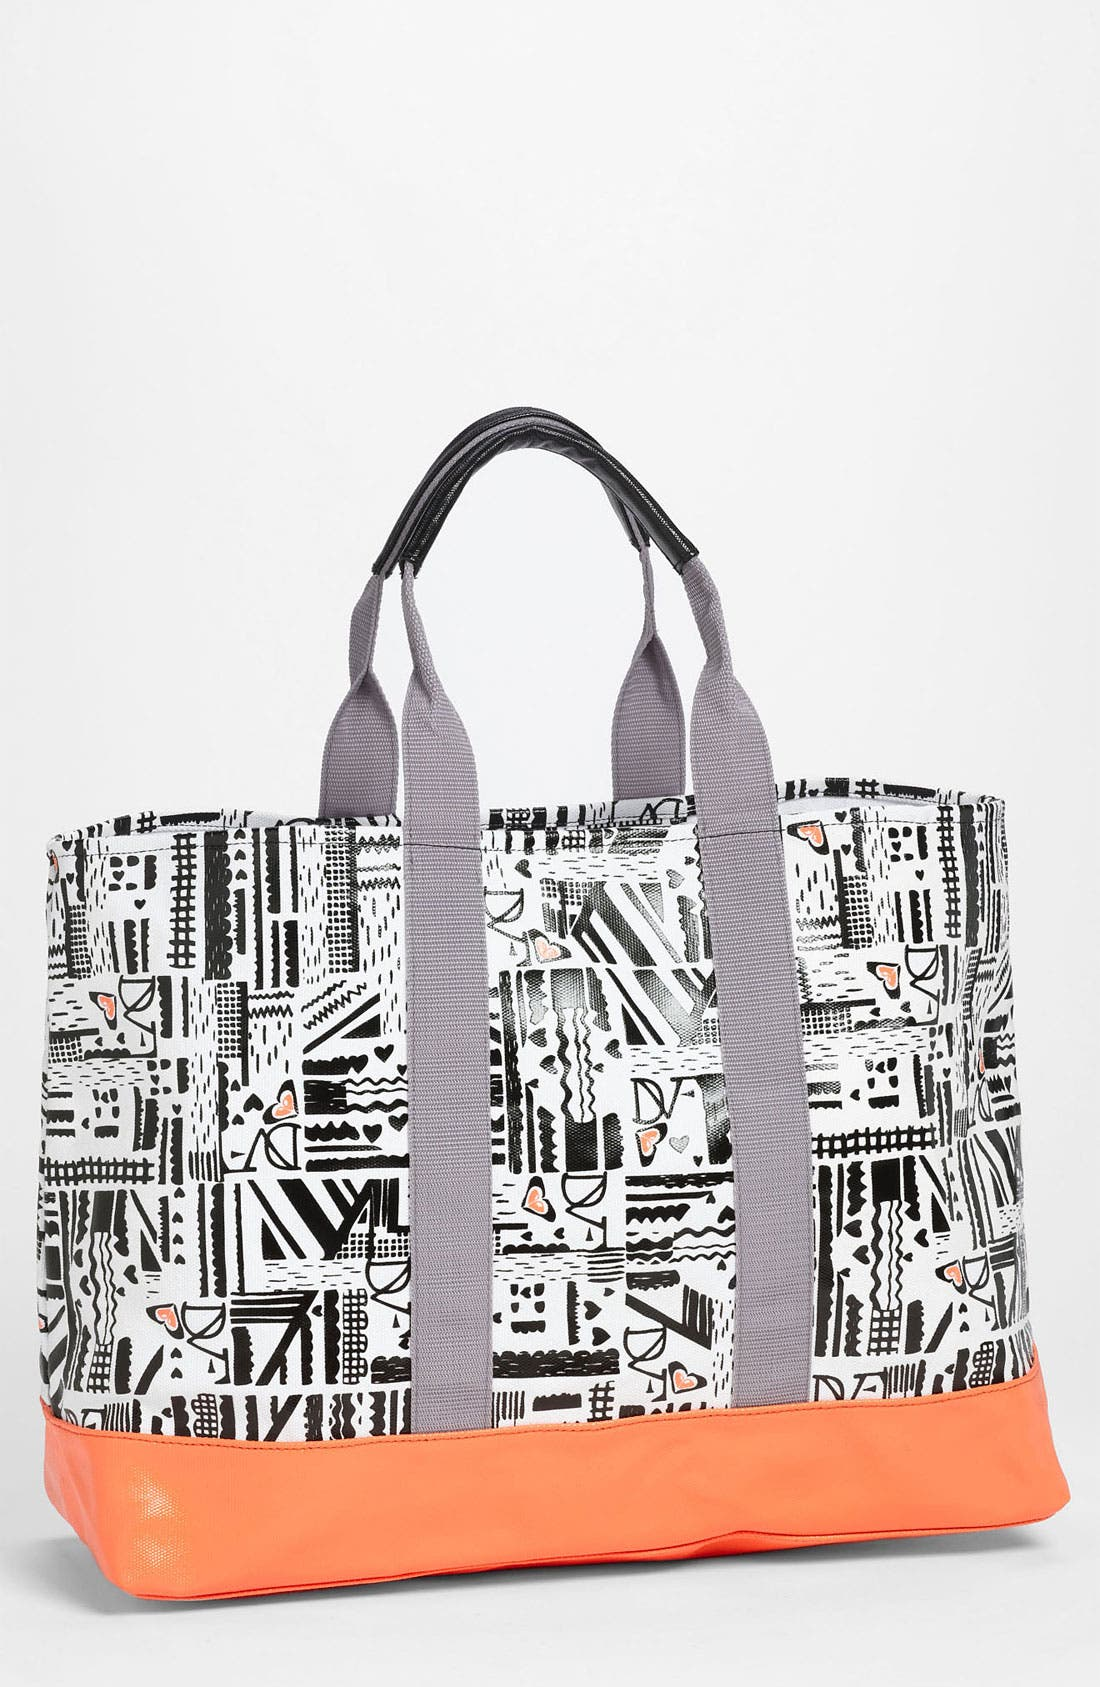 Main Image - 'DVF Loves Roxy' Tote Bag